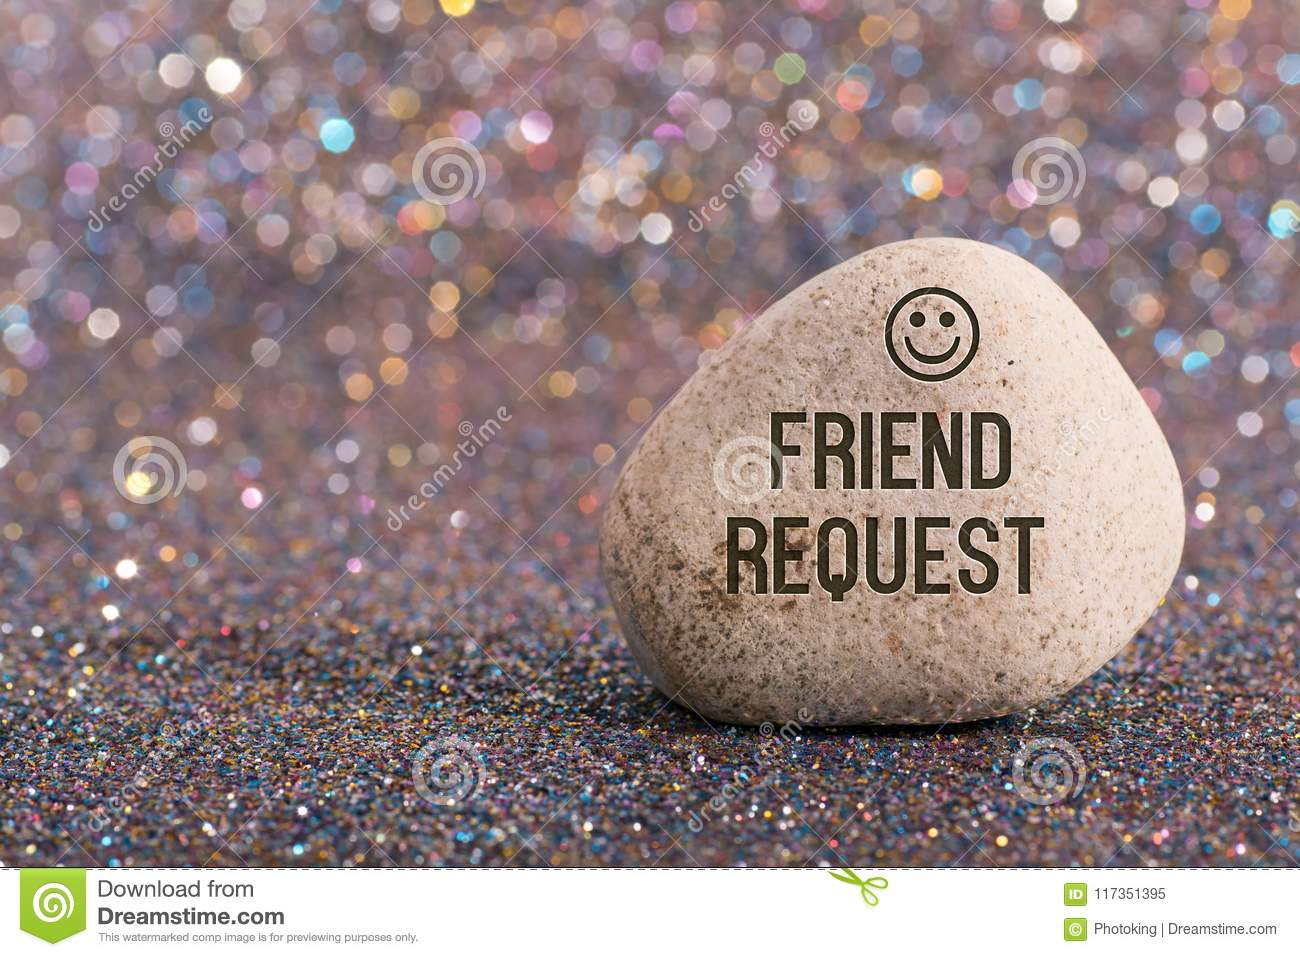 Friend request on stone